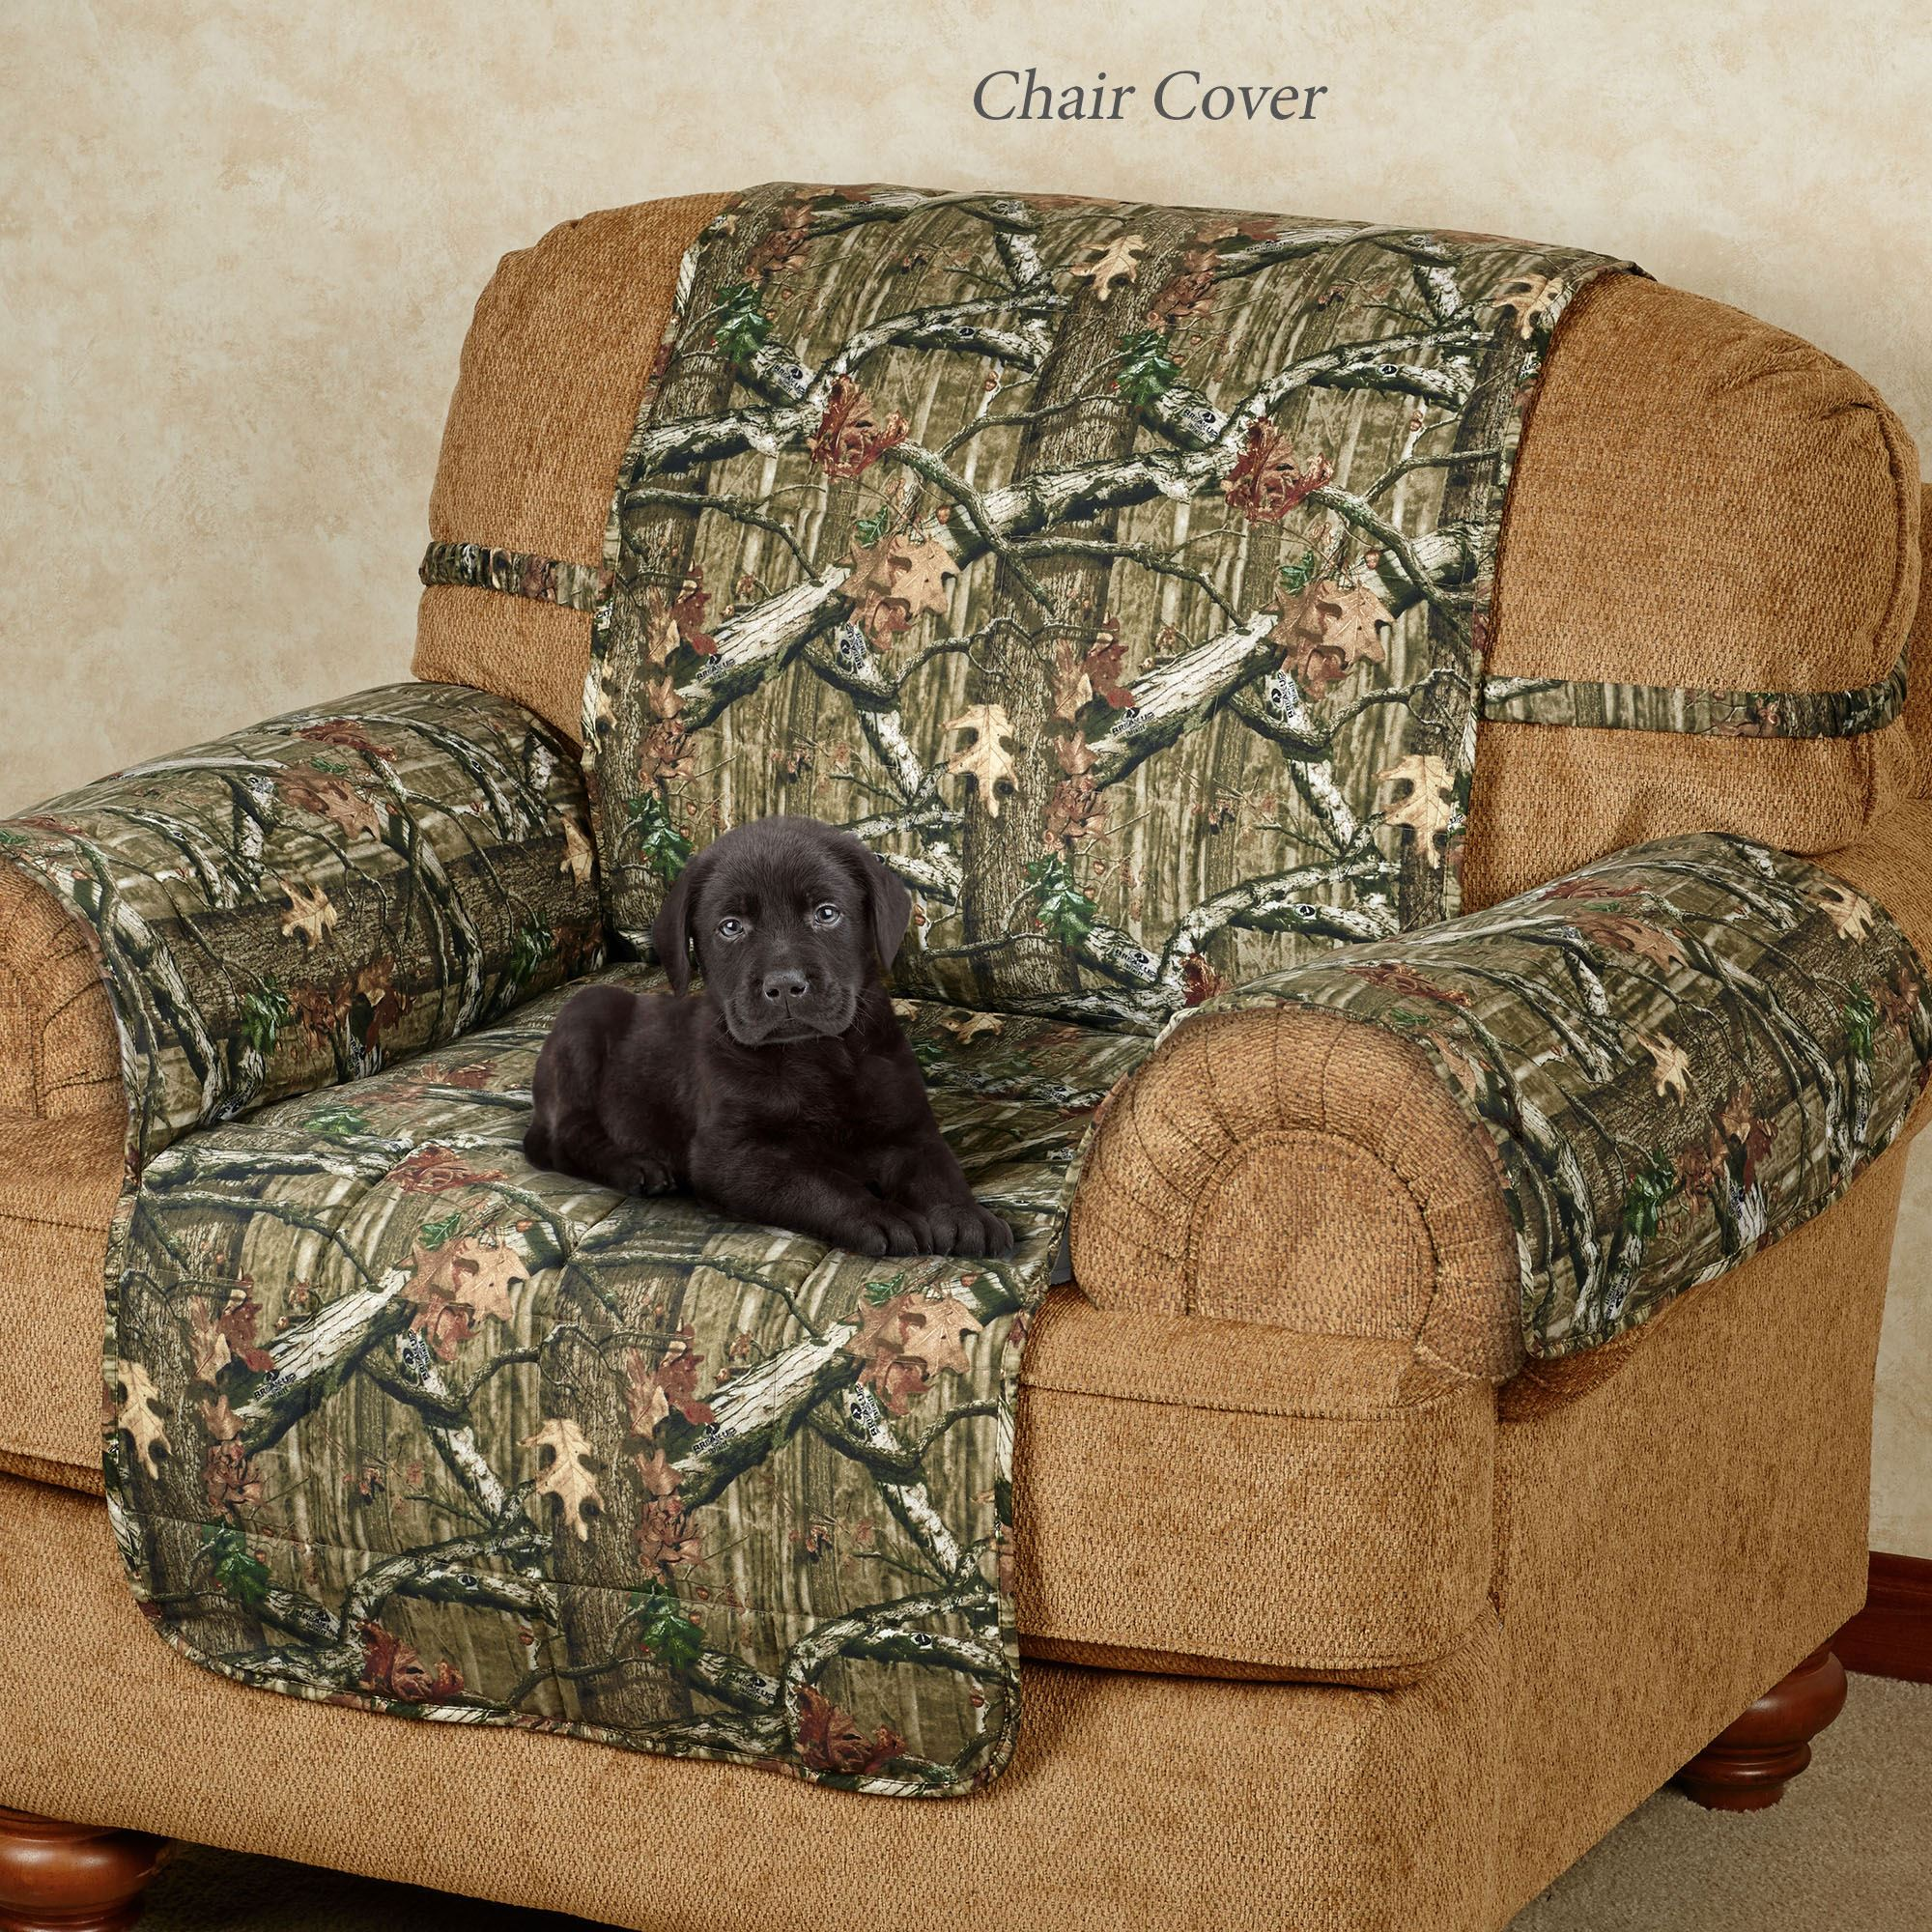 kits rustic leather grass plus lamp camo with pattern ca acu exciting shadow dark table cabin also living and cheap coffee ottoman decoration pink room decorative wood couches sofa unique camouflage furniture interior couch for chair log design cabelas